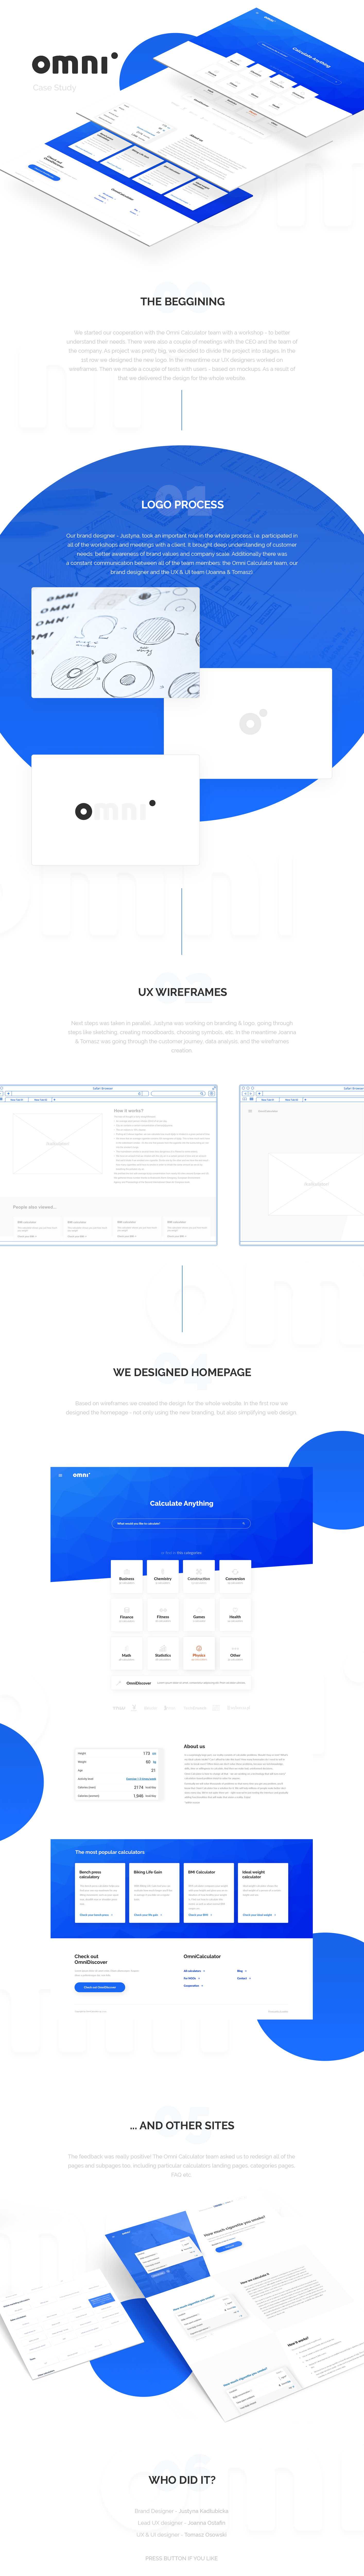 page redesign